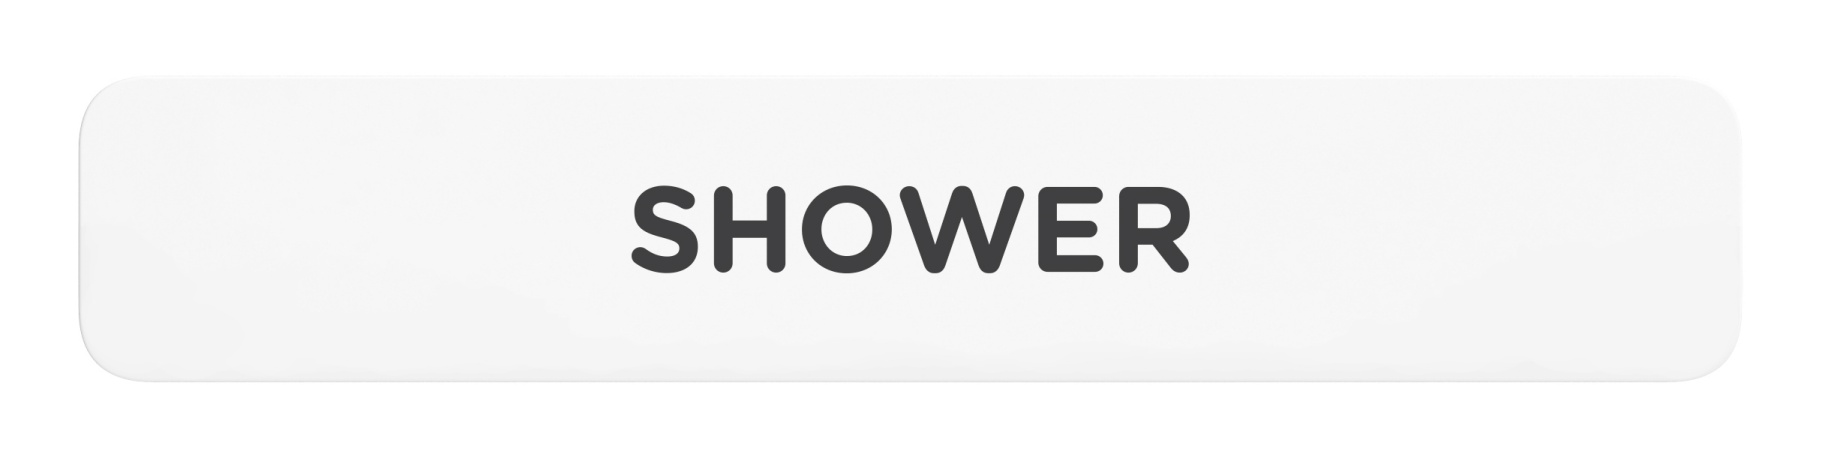 Shower_Sign_Door_Wall Mount Sign_8x1.5_6mm Thick Solid Surface Sign with Inlay Resins_Self Adhesive